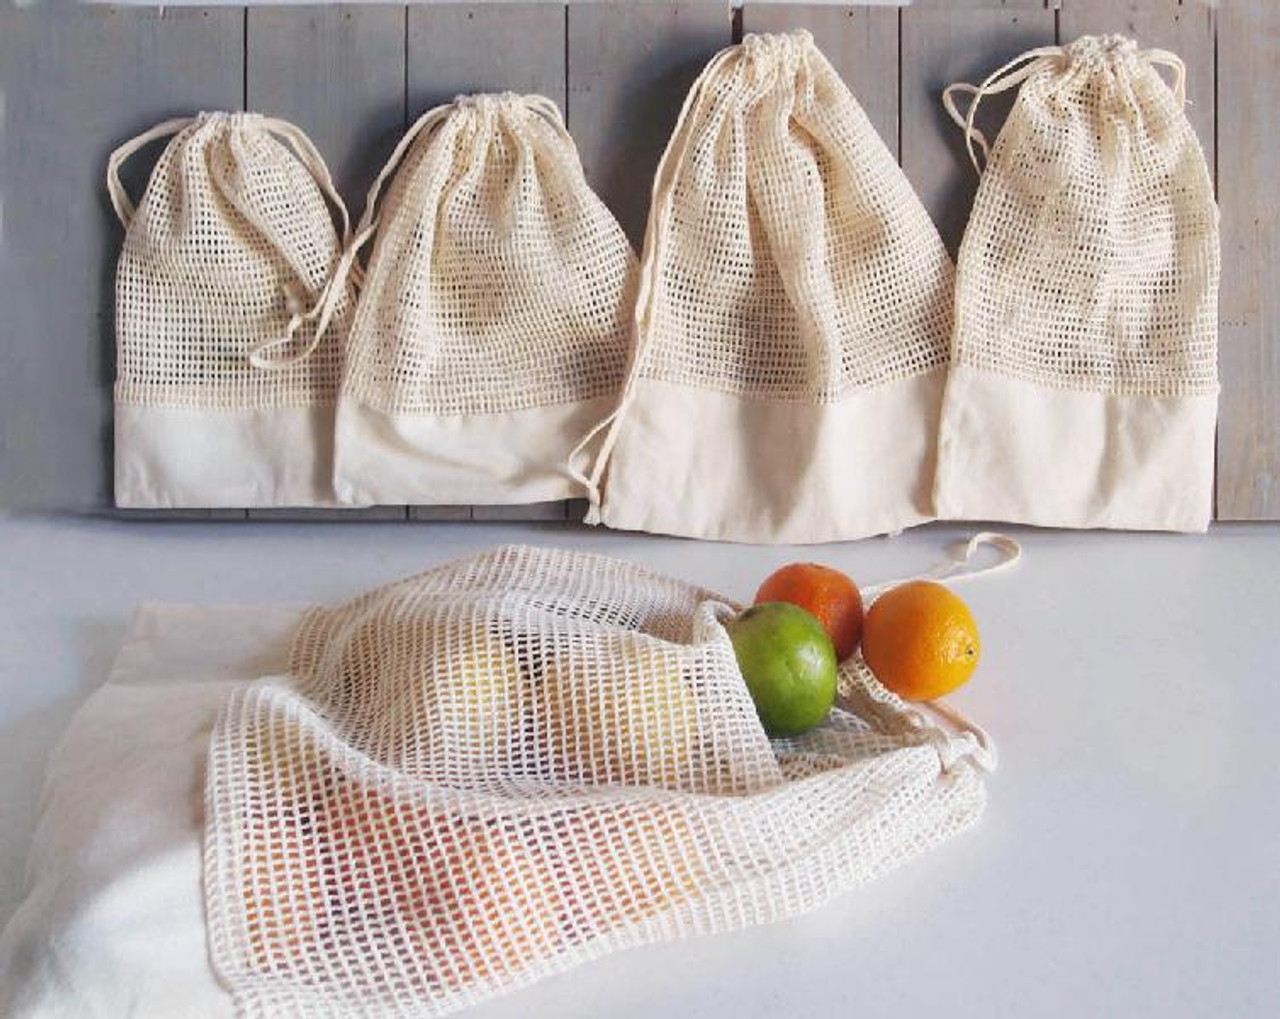 Cotton Net Drawstring Bag with Fabric Trim Bottom (5 sizes)